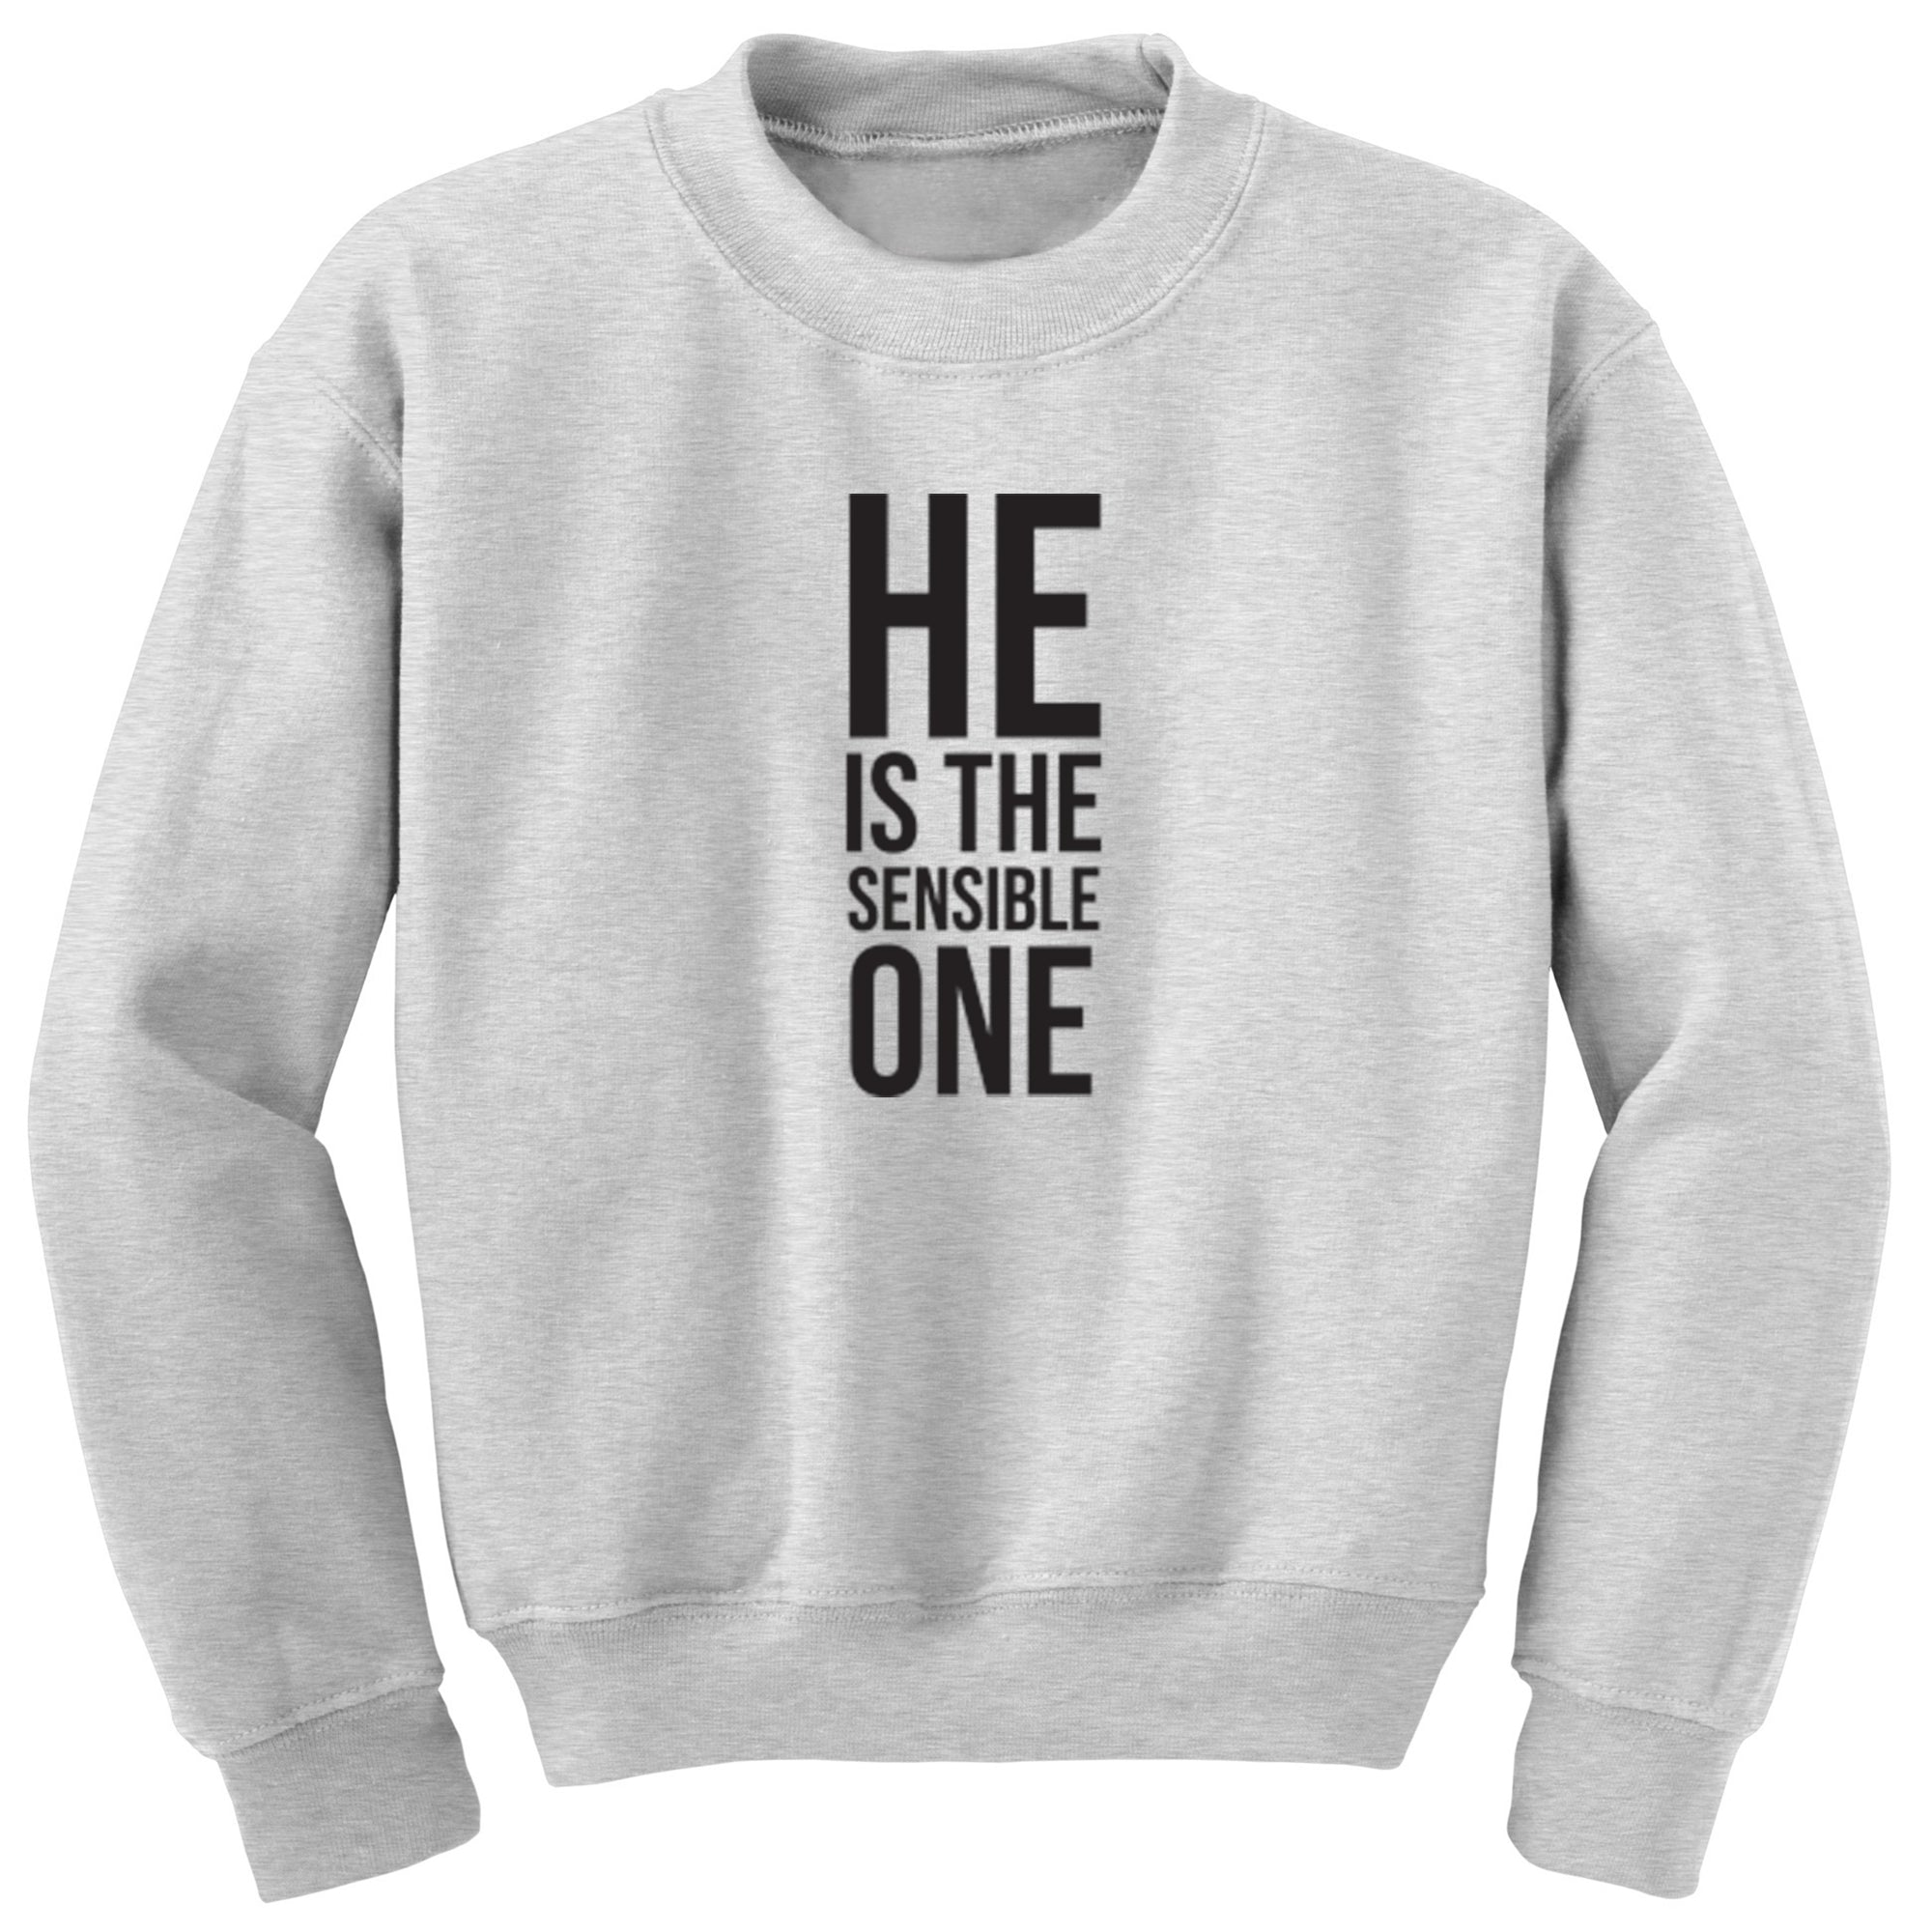 He Is The Sensible One Childrens Ages 3/4-12/14 Unisex Jumper S0340 - Illustrated Identity Ltd.